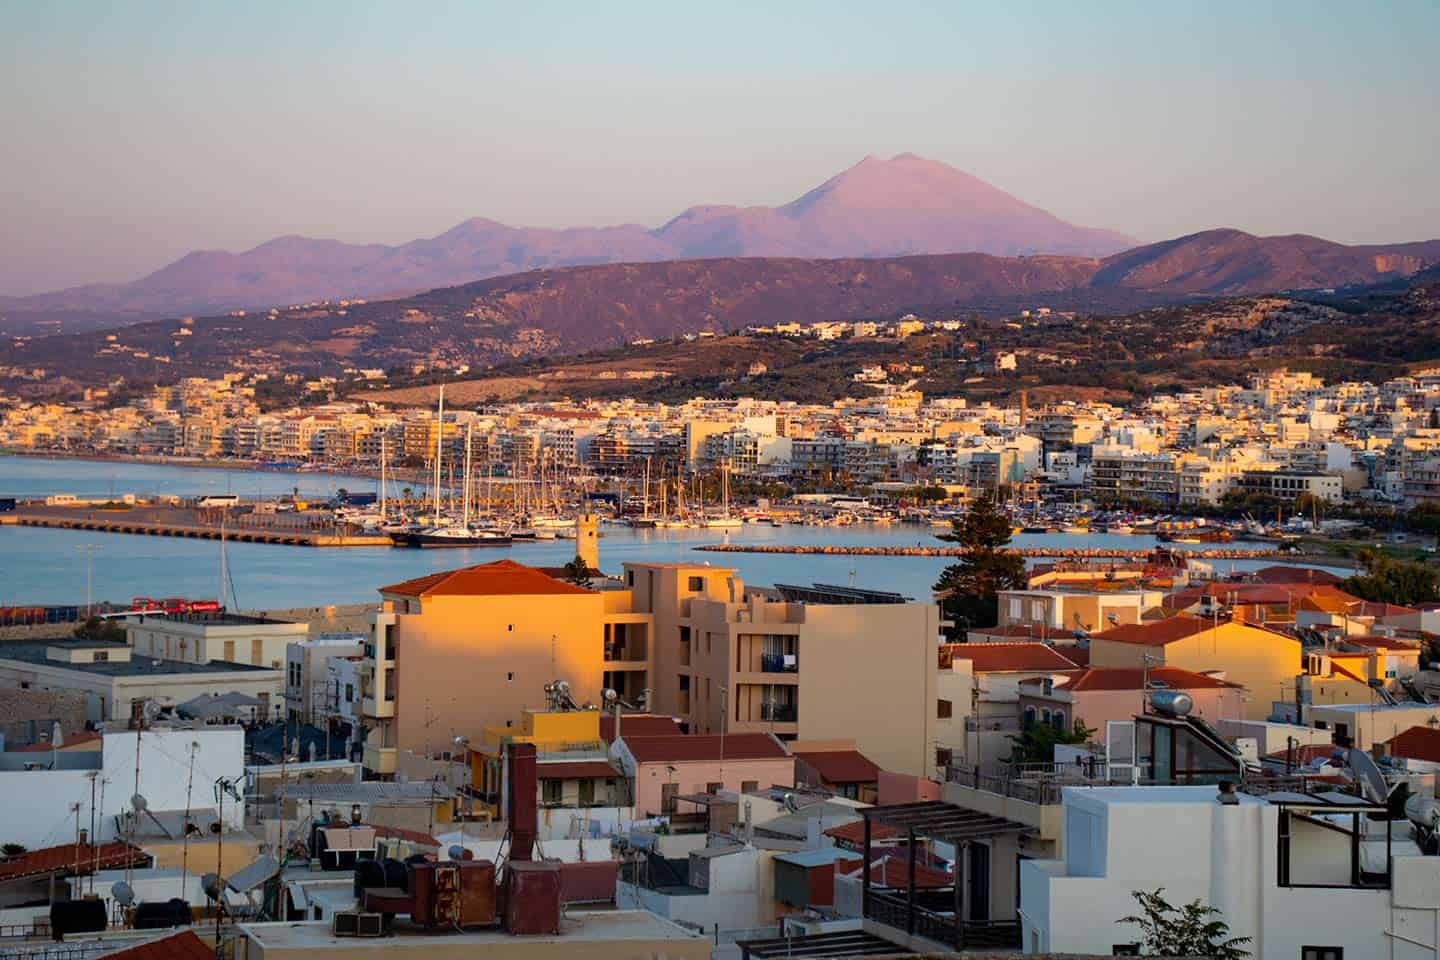 Image of Rethymno city from the Fortezza